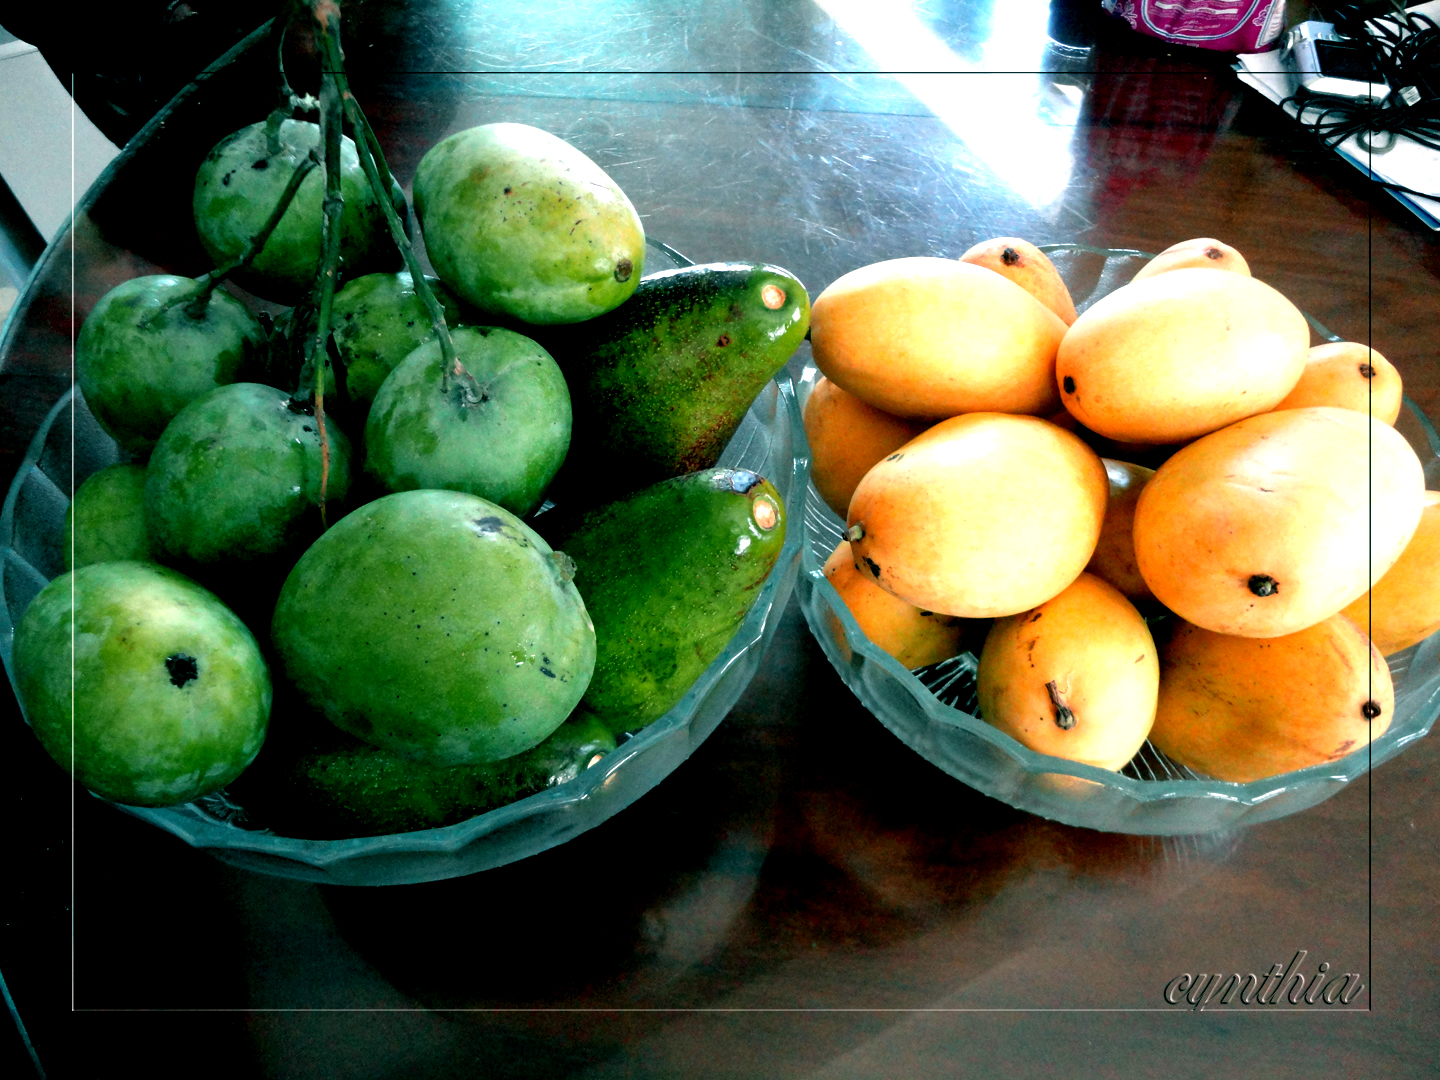 My Tropical Philippines Philippine Fruits